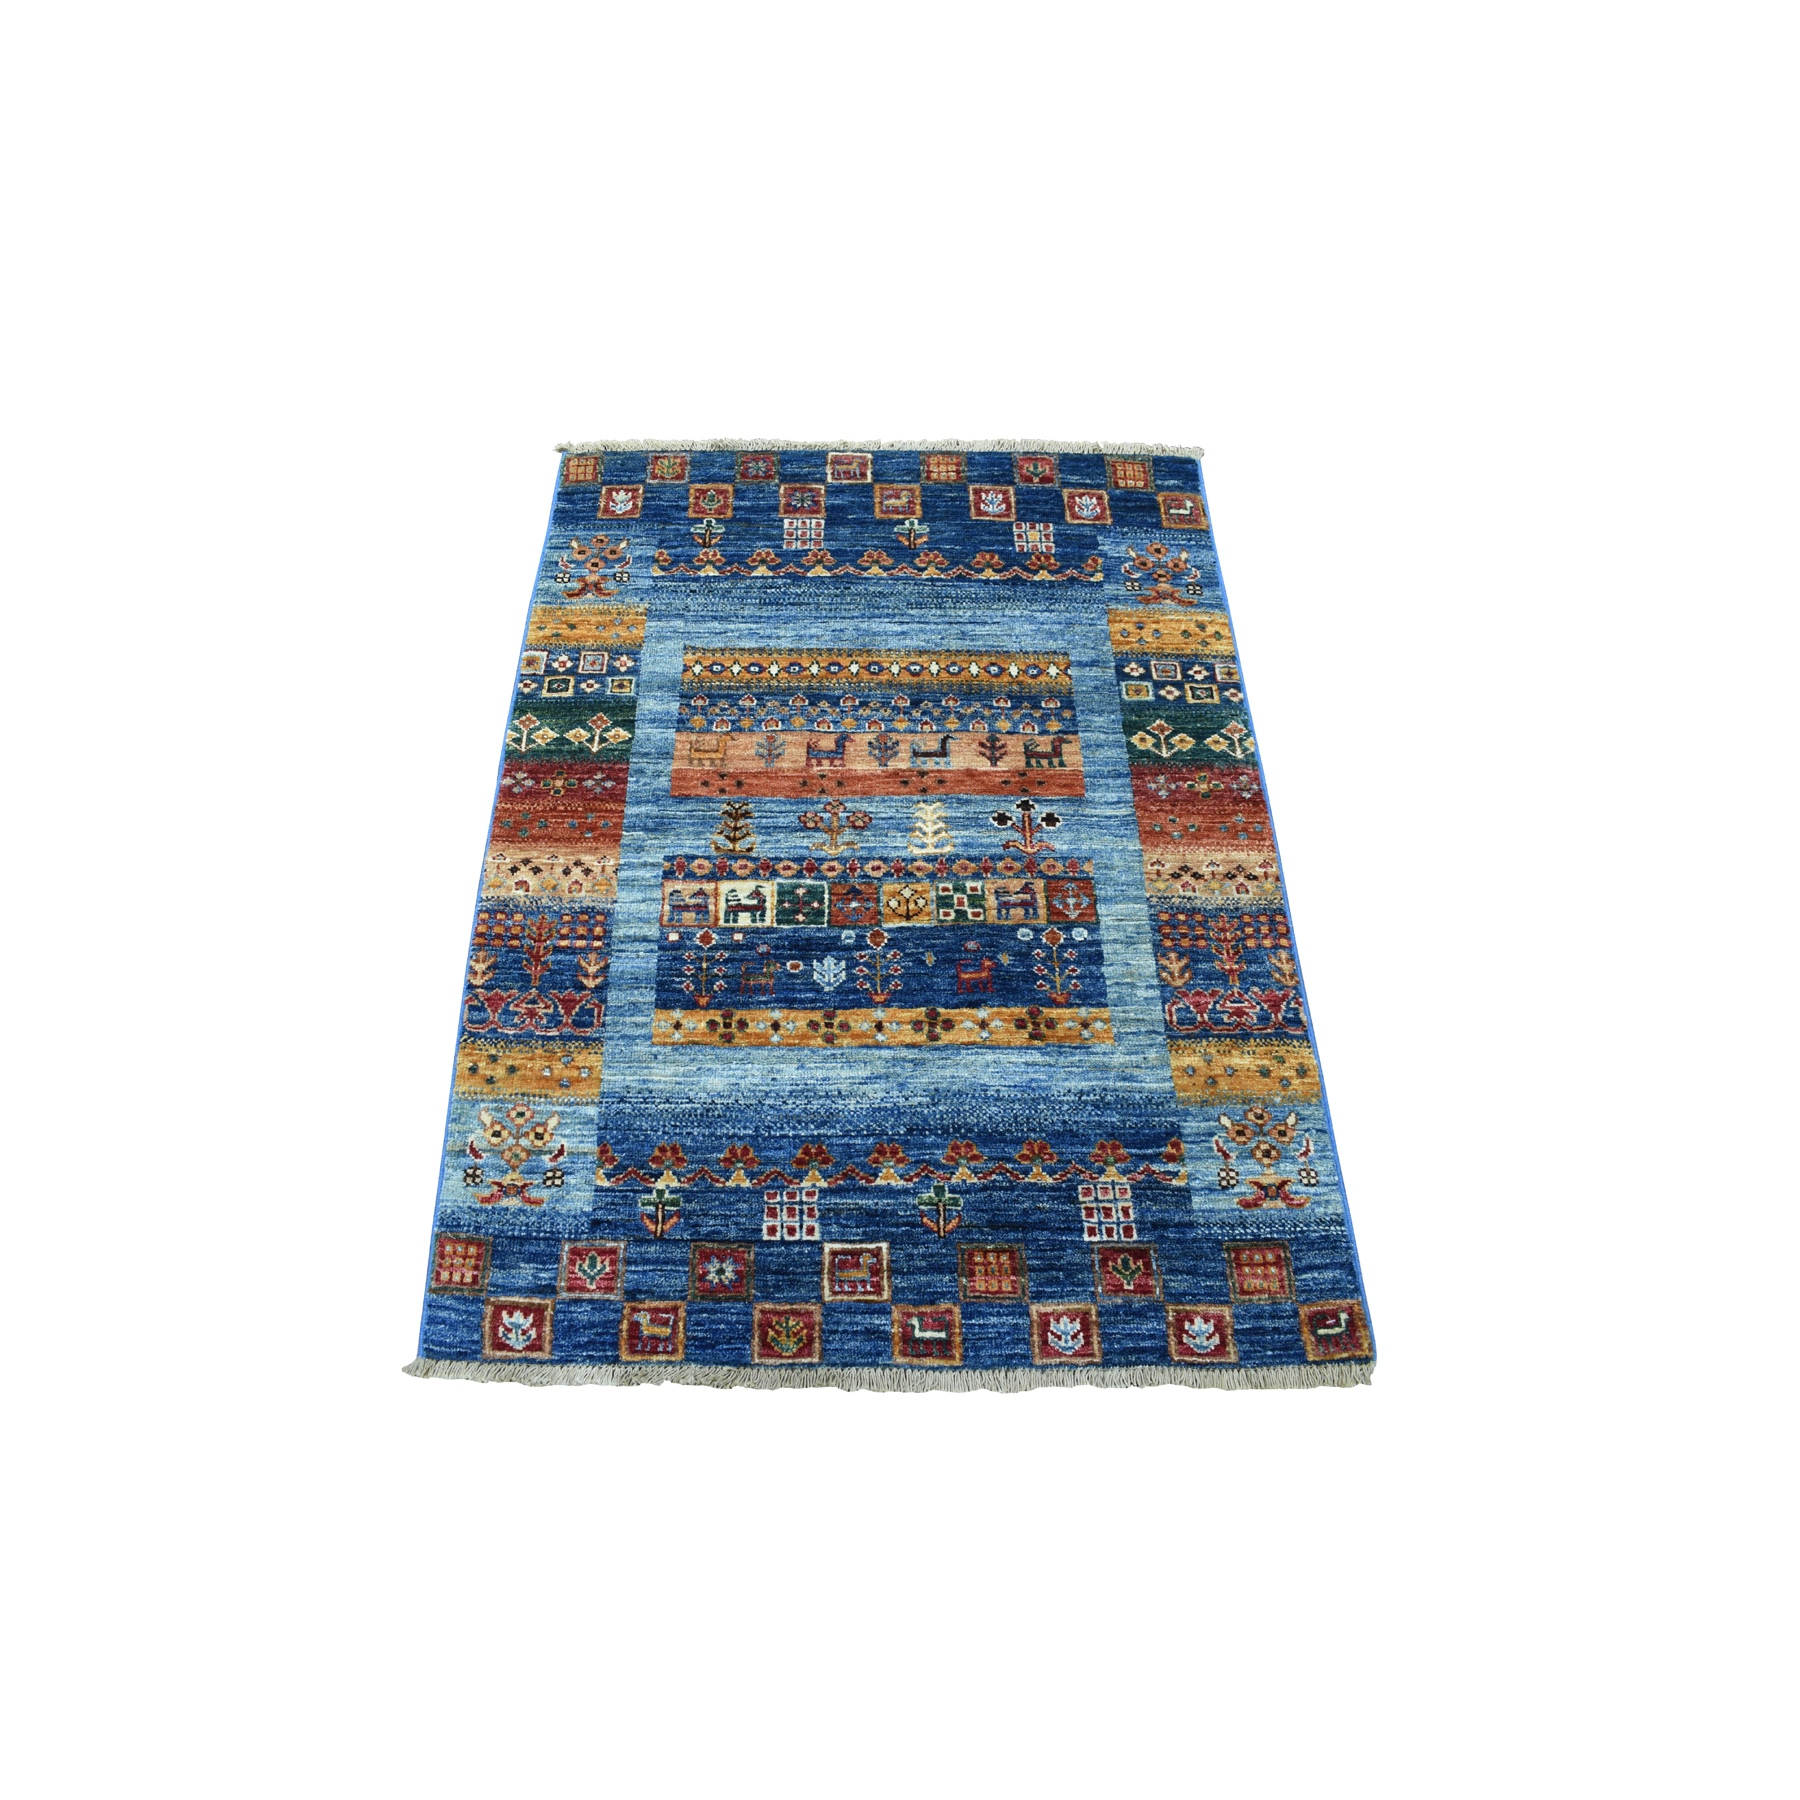 3'x3'10' Blue Kashkuli Gabbeh Pictorial Hand Spun Wool Hand-Knotted Ethnic Oriental Rug